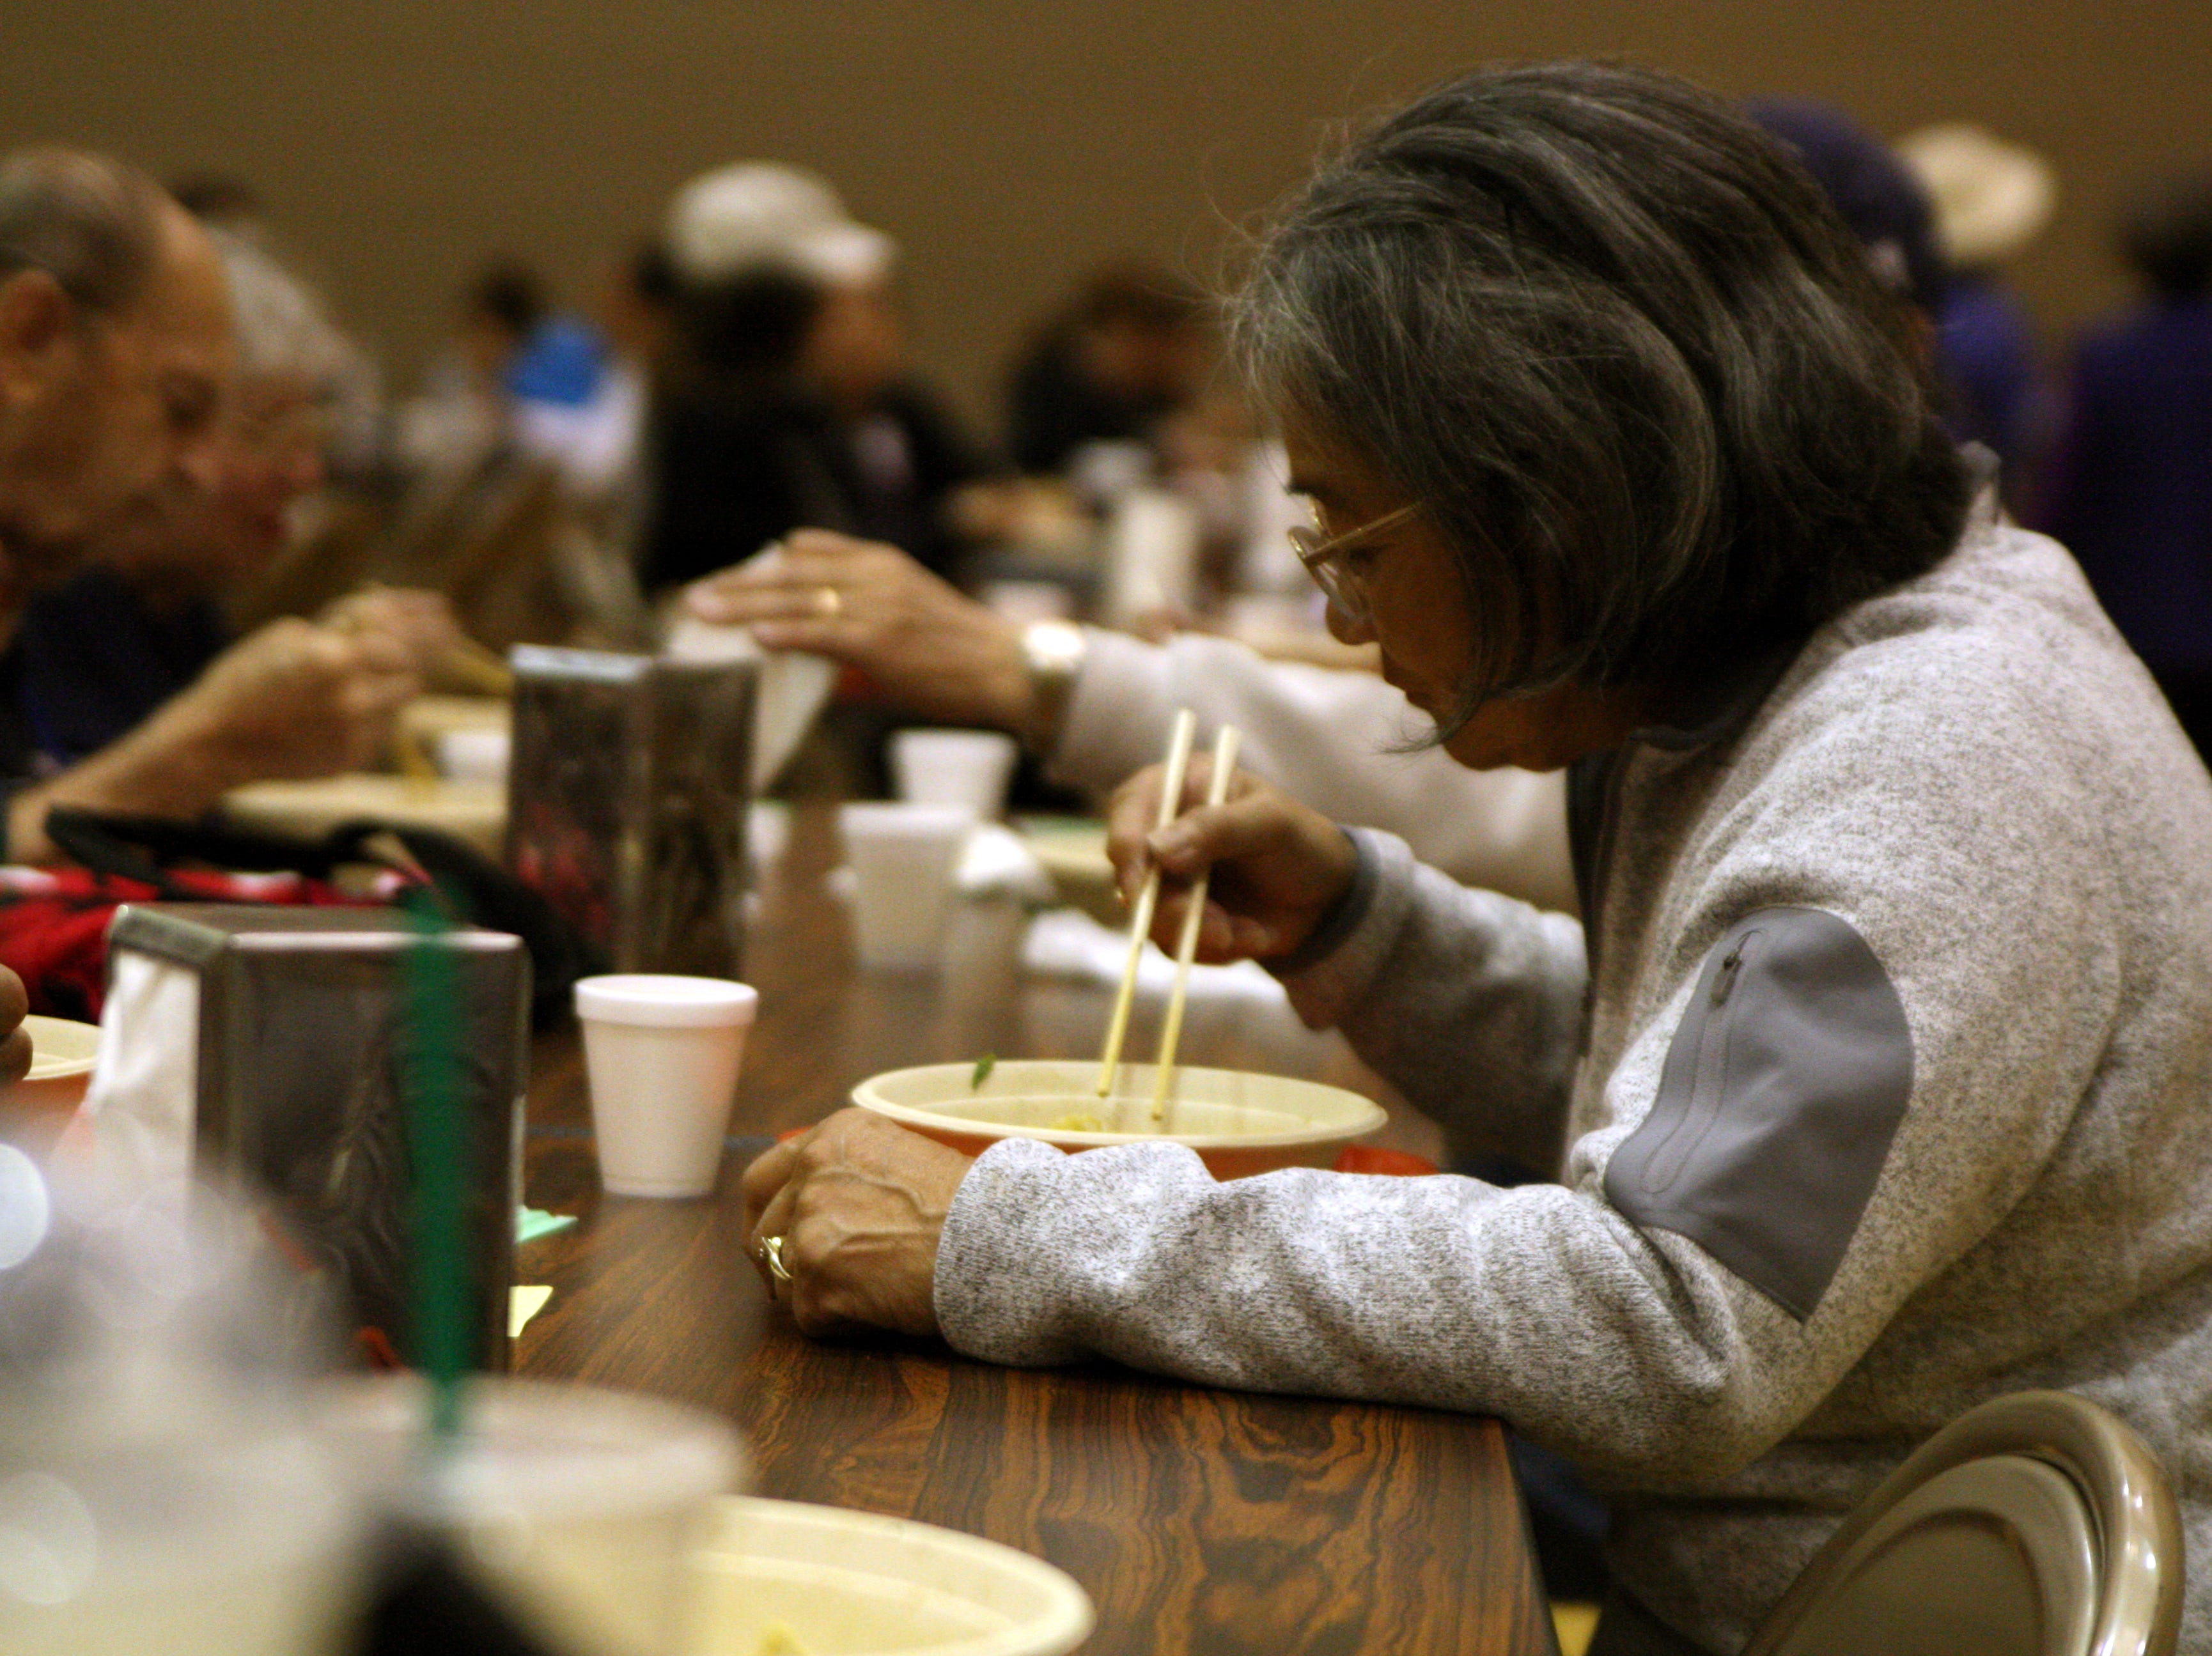 Chris Yoneyama eats ramen, seated across from her husband, Henry. She and Henry are members of the Bhuddist  Temple which hosted part of the festival. April 27, 2019.